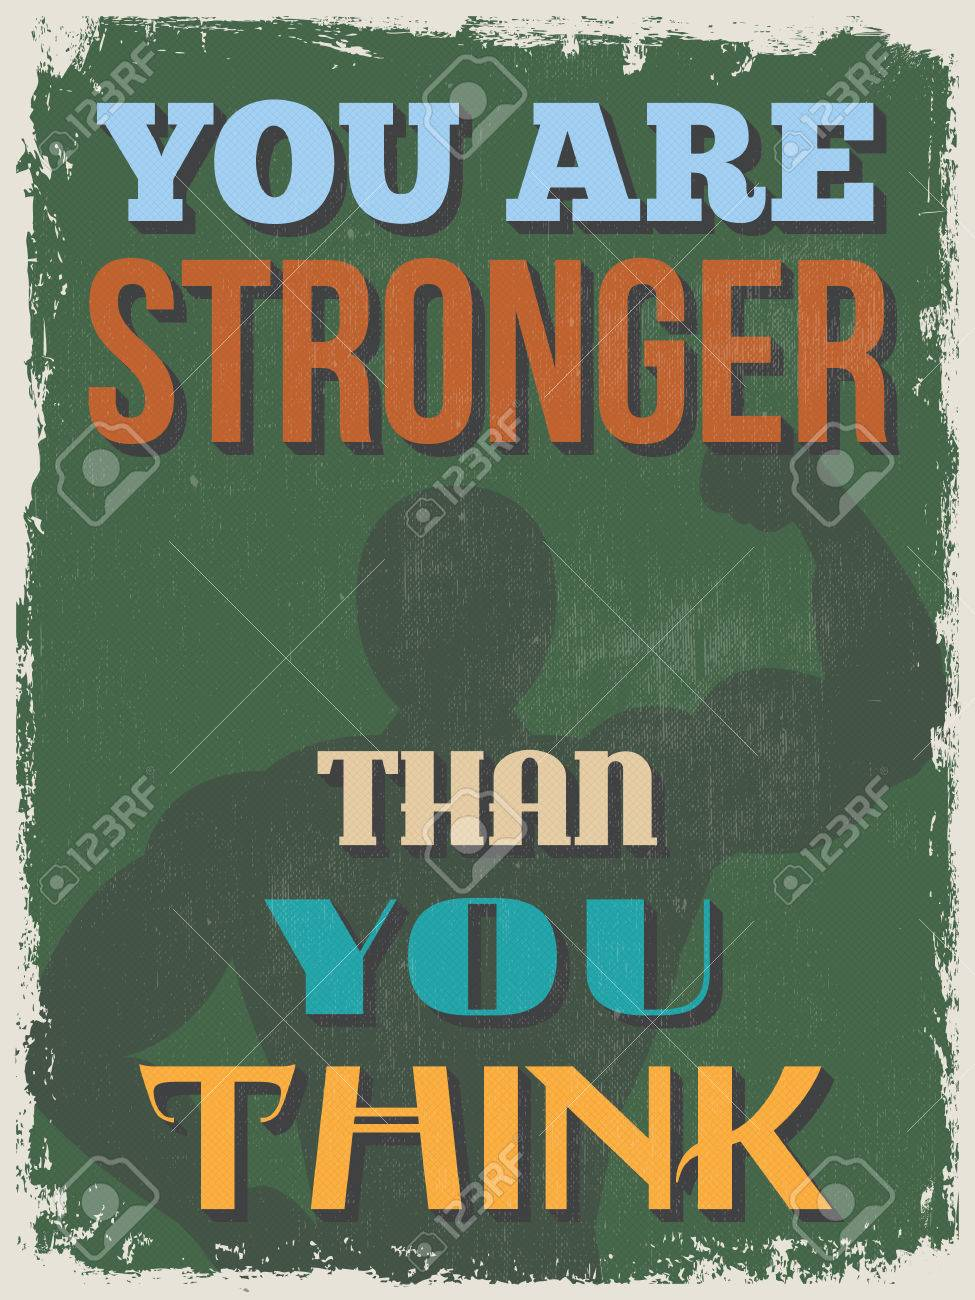 Retro Vintage Motivational Quote Poster  You Are Stronger Than